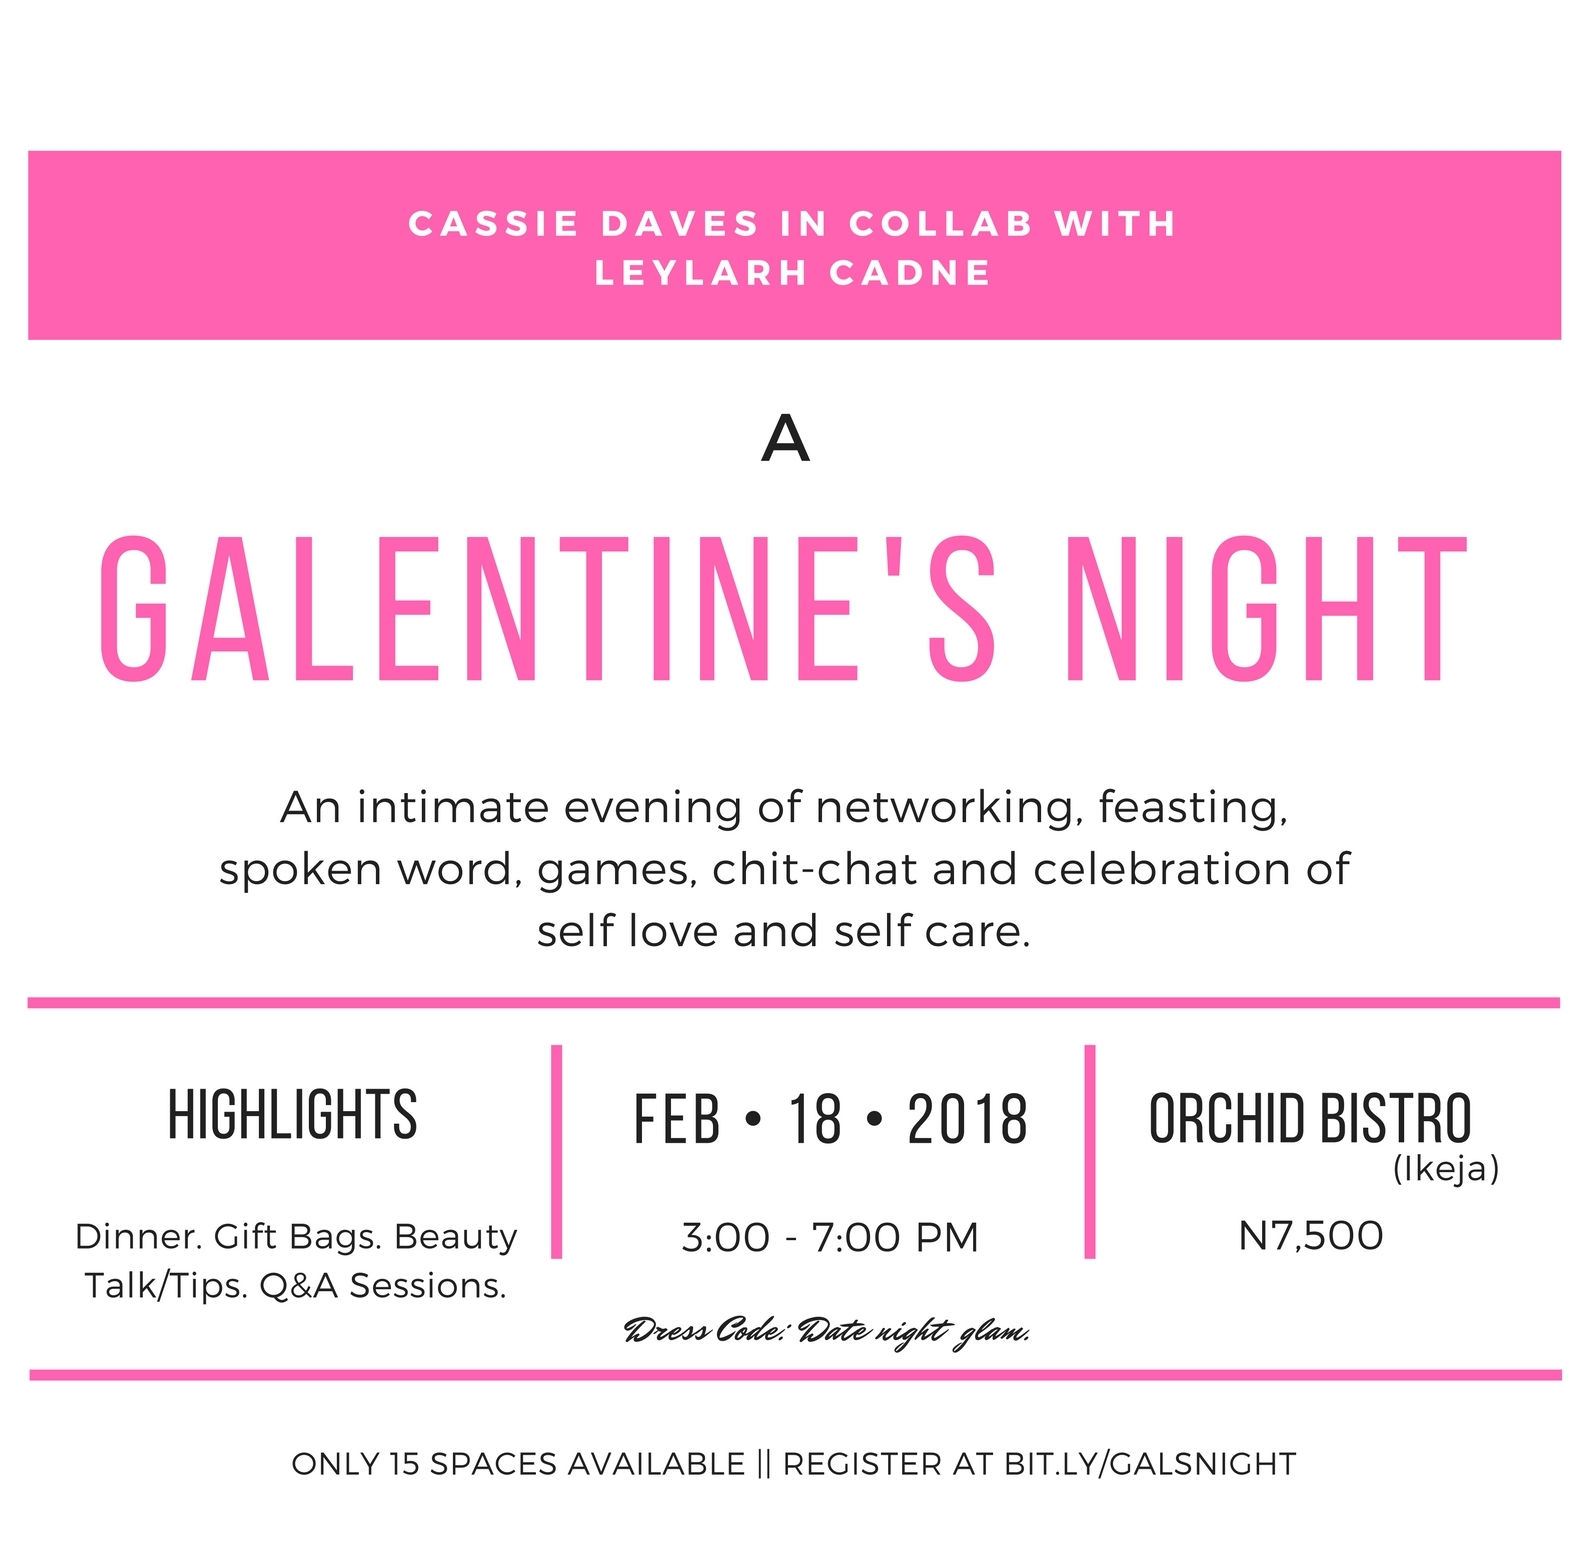 Galentine's day with cassiedaves and Leylarh Cadne flyer image